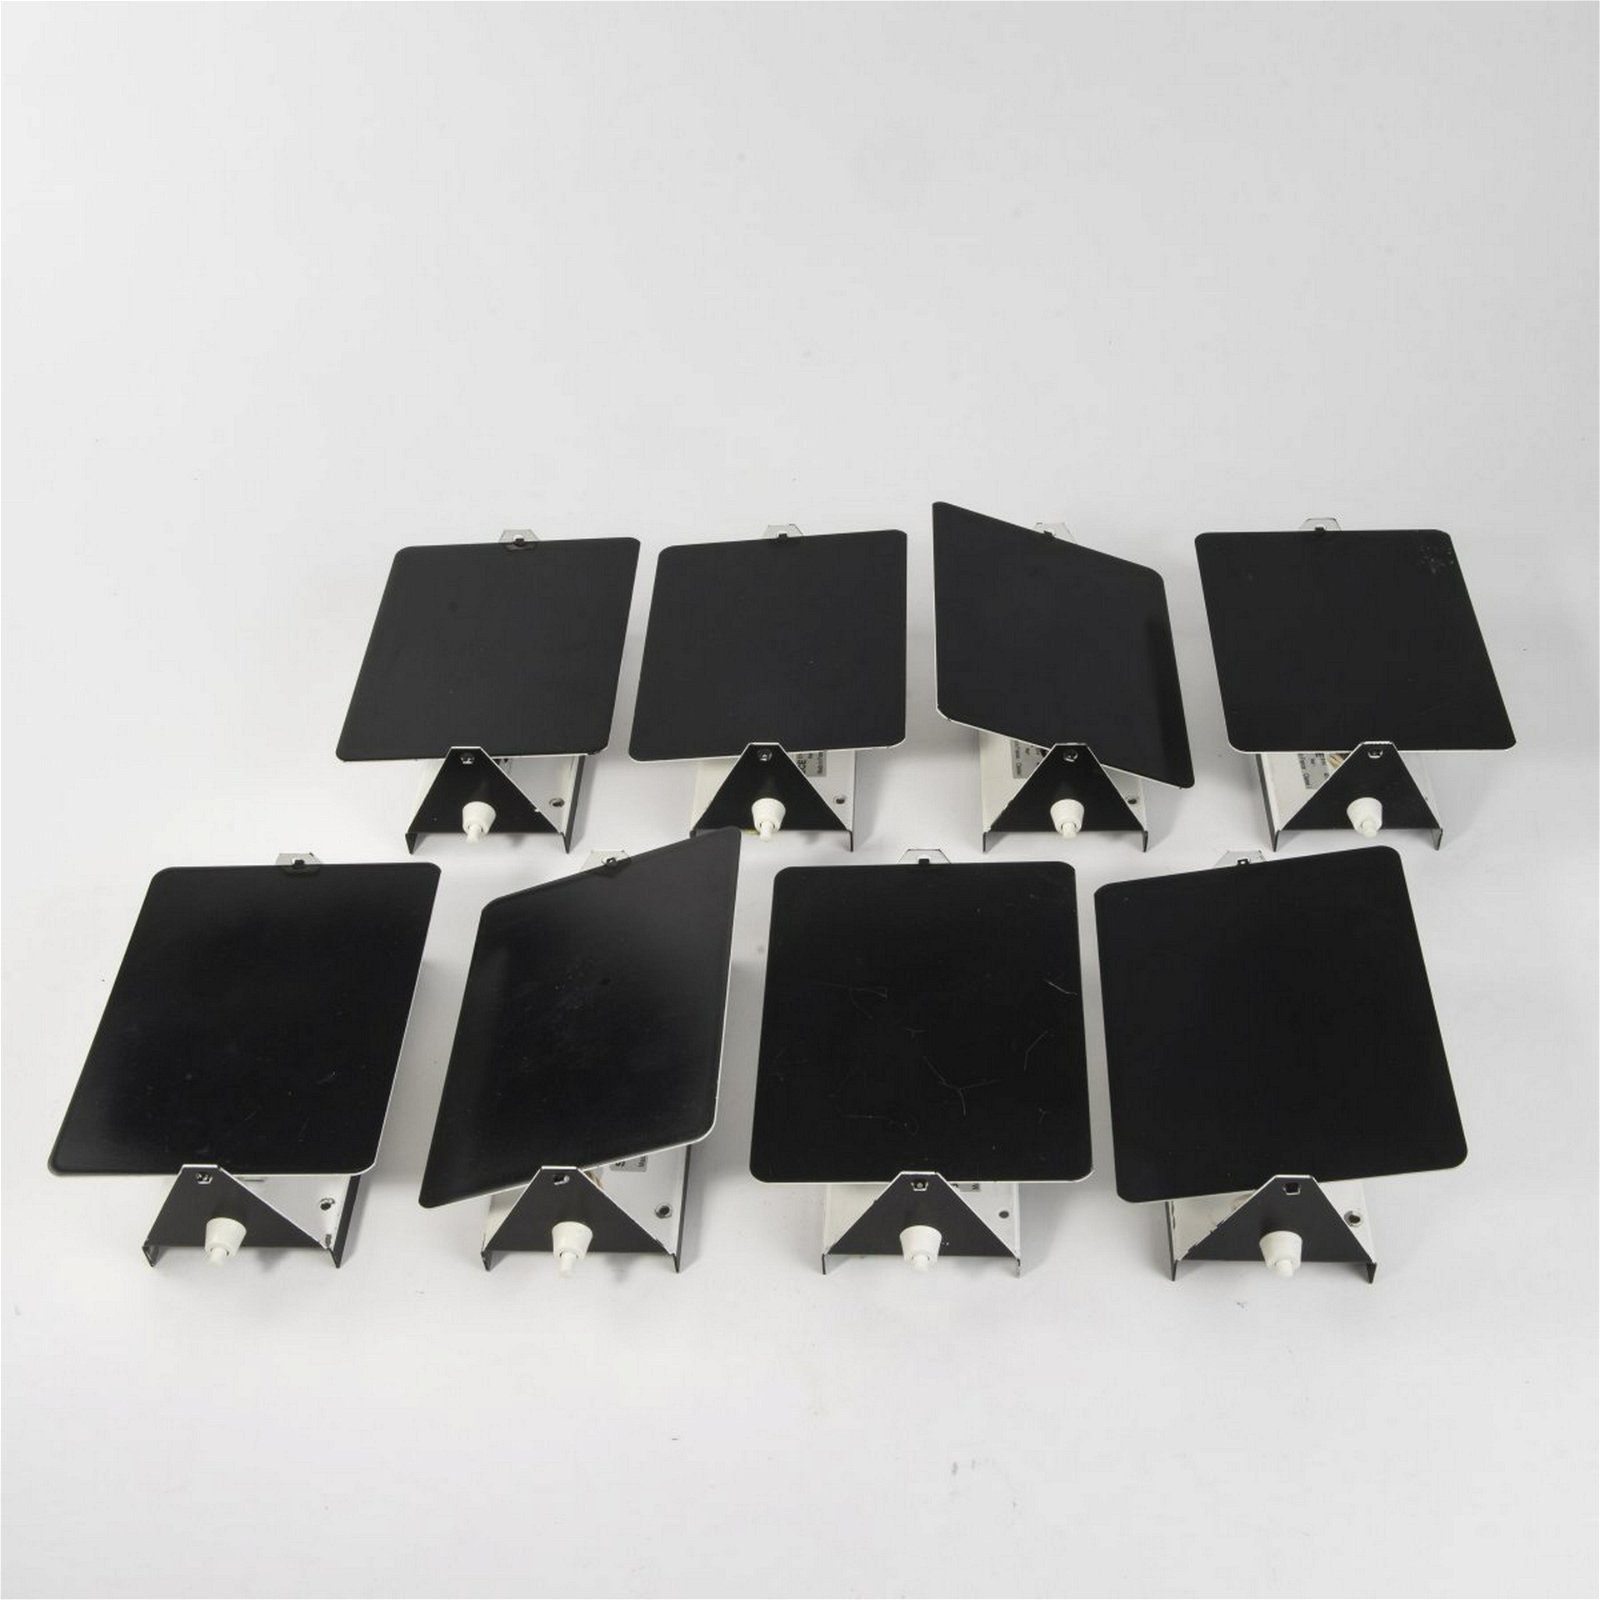 Charlotte Perriand, Eight wall lights, 1963